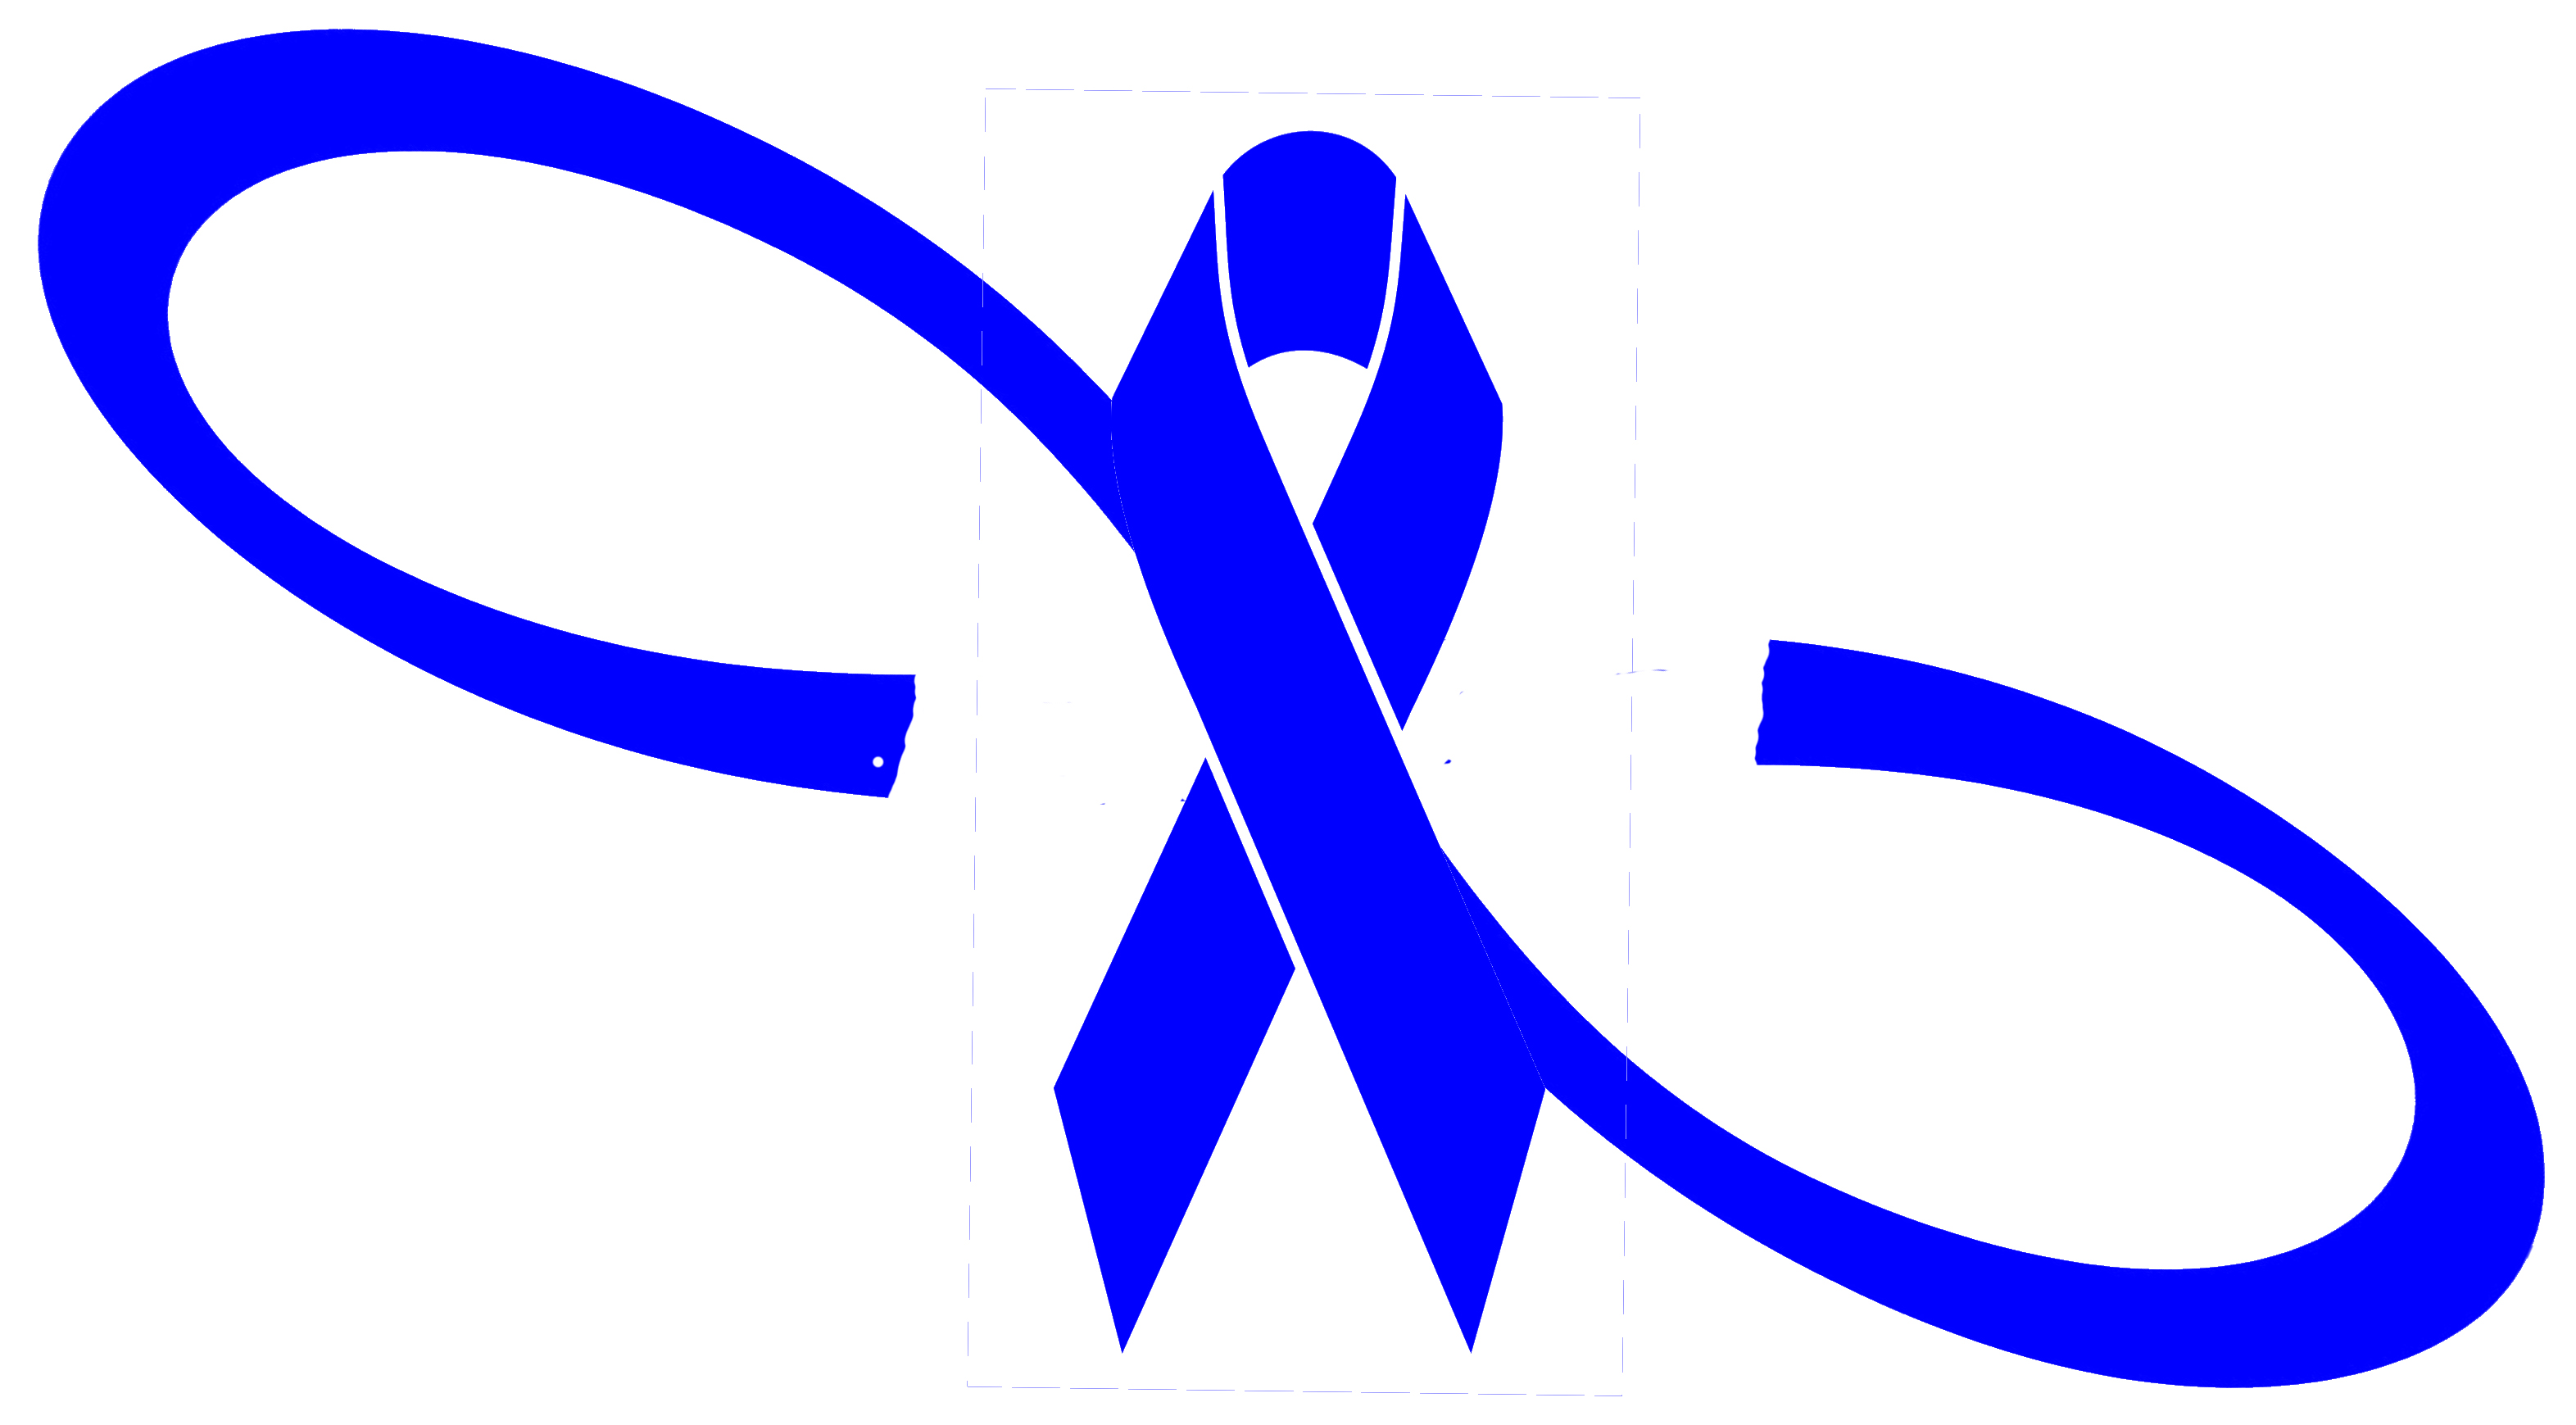 Blue Infinity Ribbon Awareness Decal Abuse Recovery Bullying Colon Cancer Sticker Big Tees Printing Online Store Powered By Storenvy